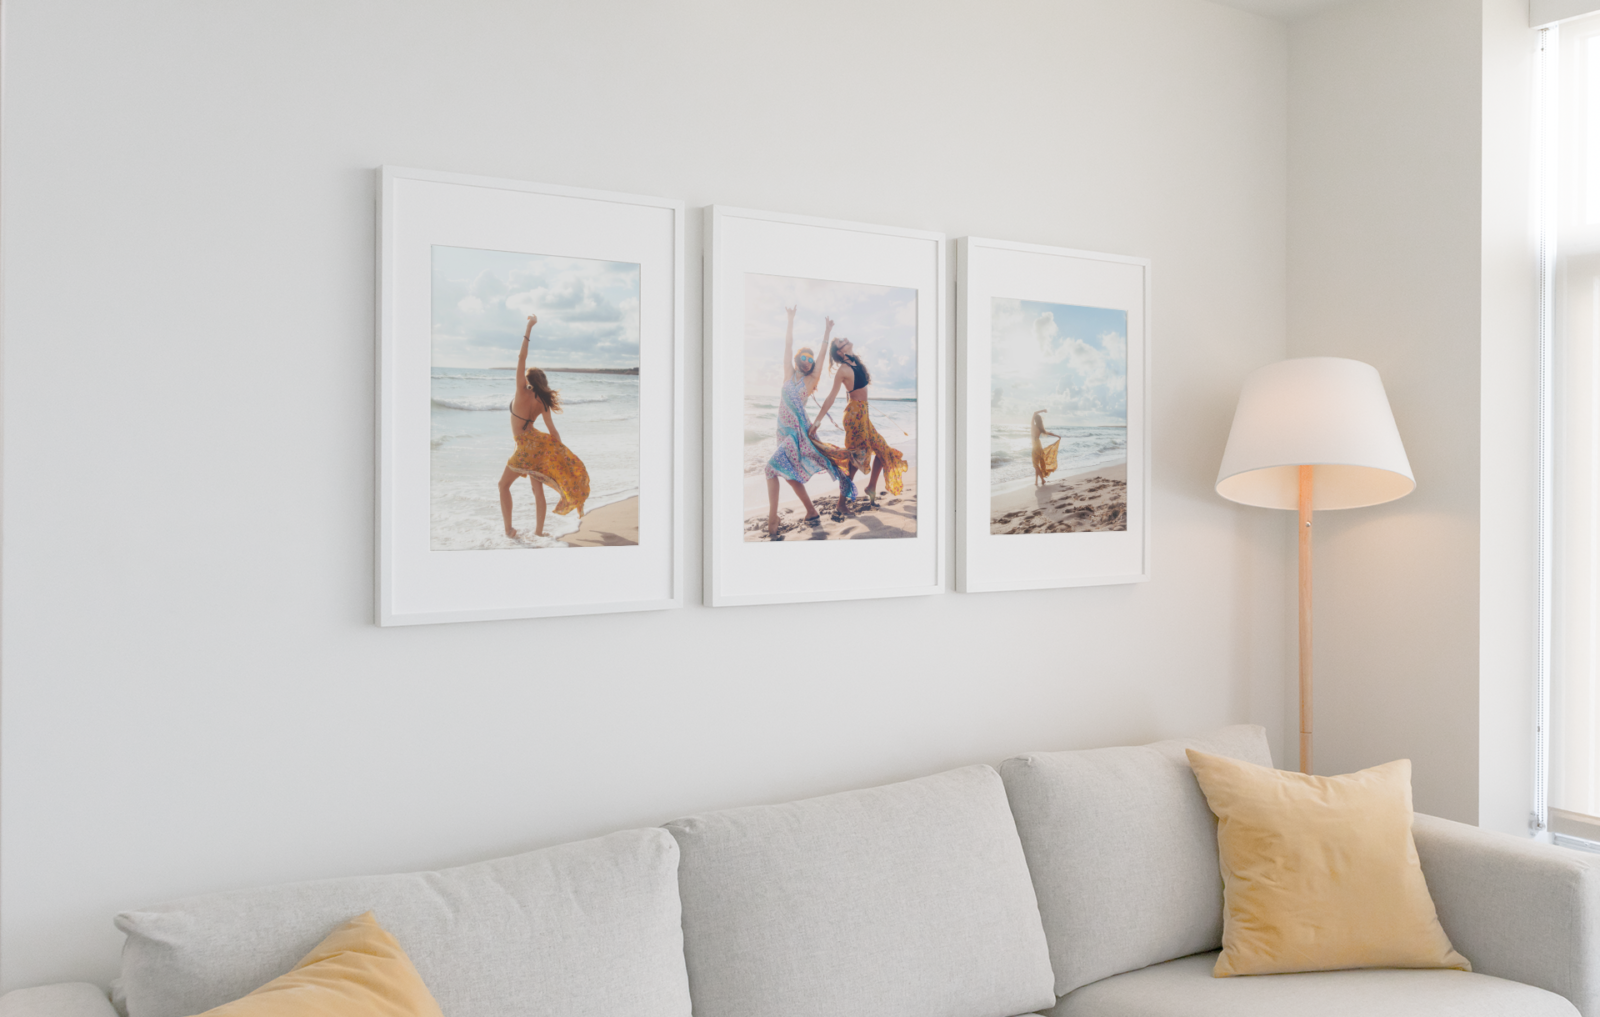 A2 Photo Print Posters displayed in frames